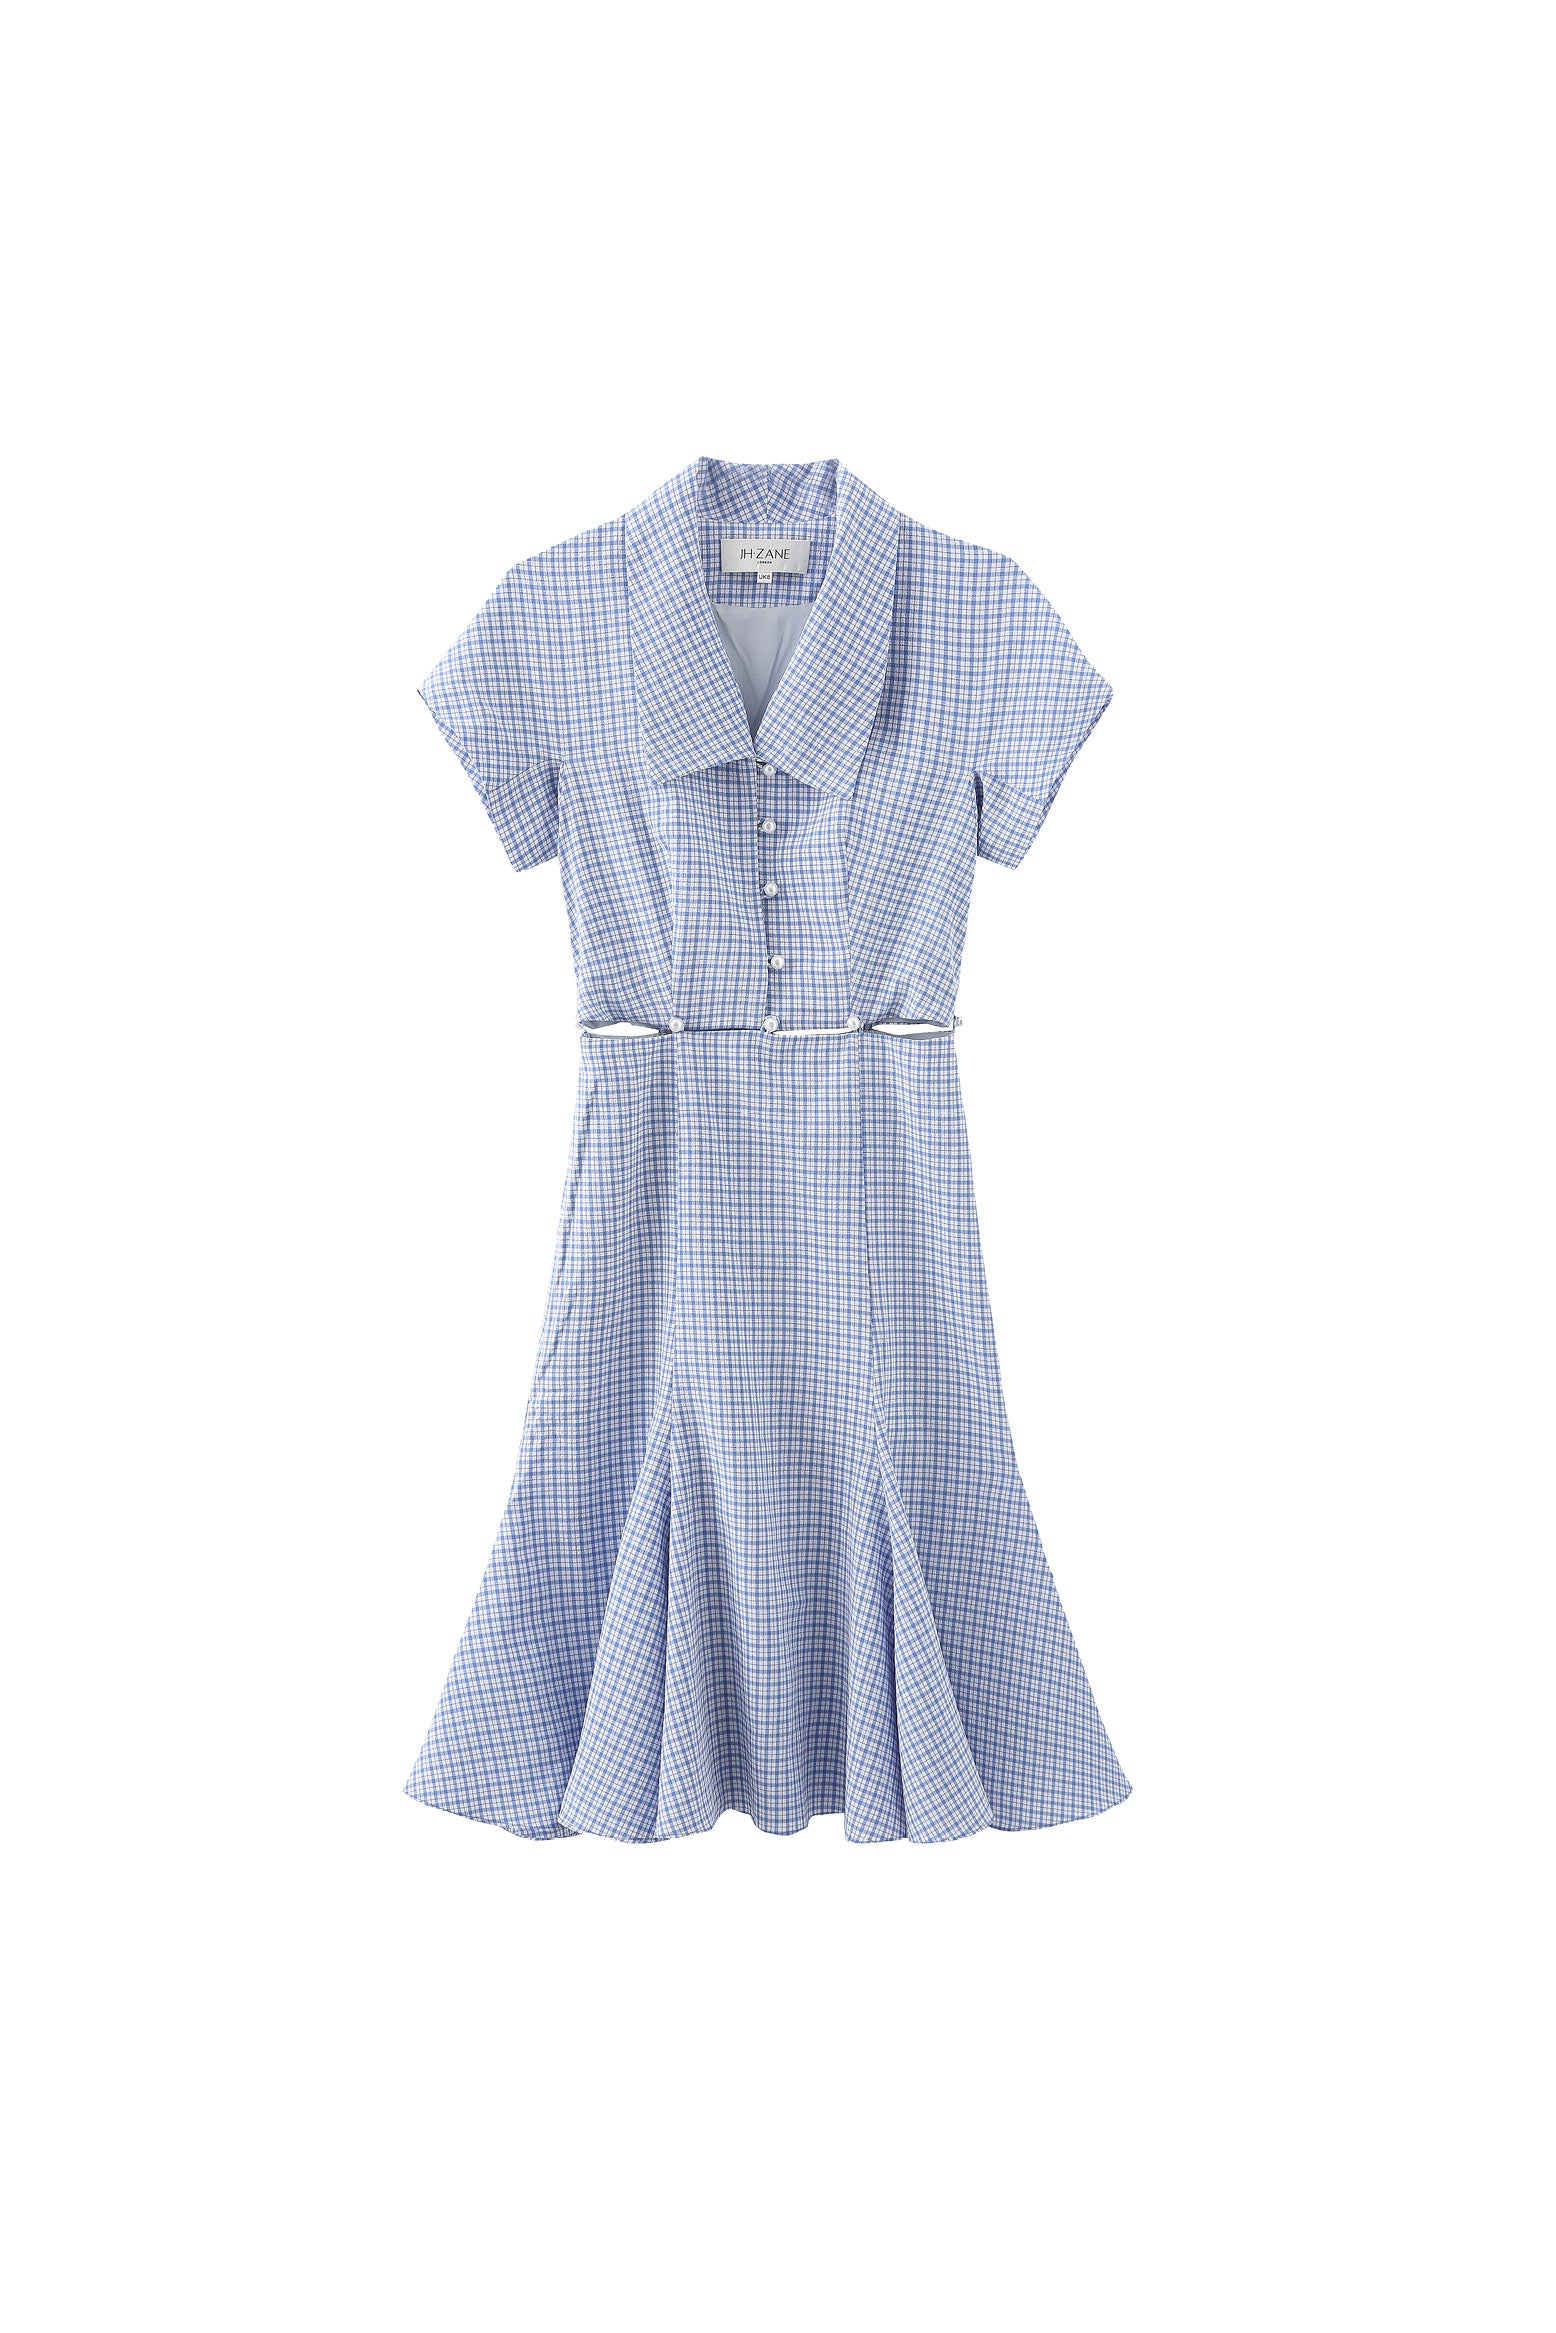 Debbie Detachable Dress in Blue Gingham